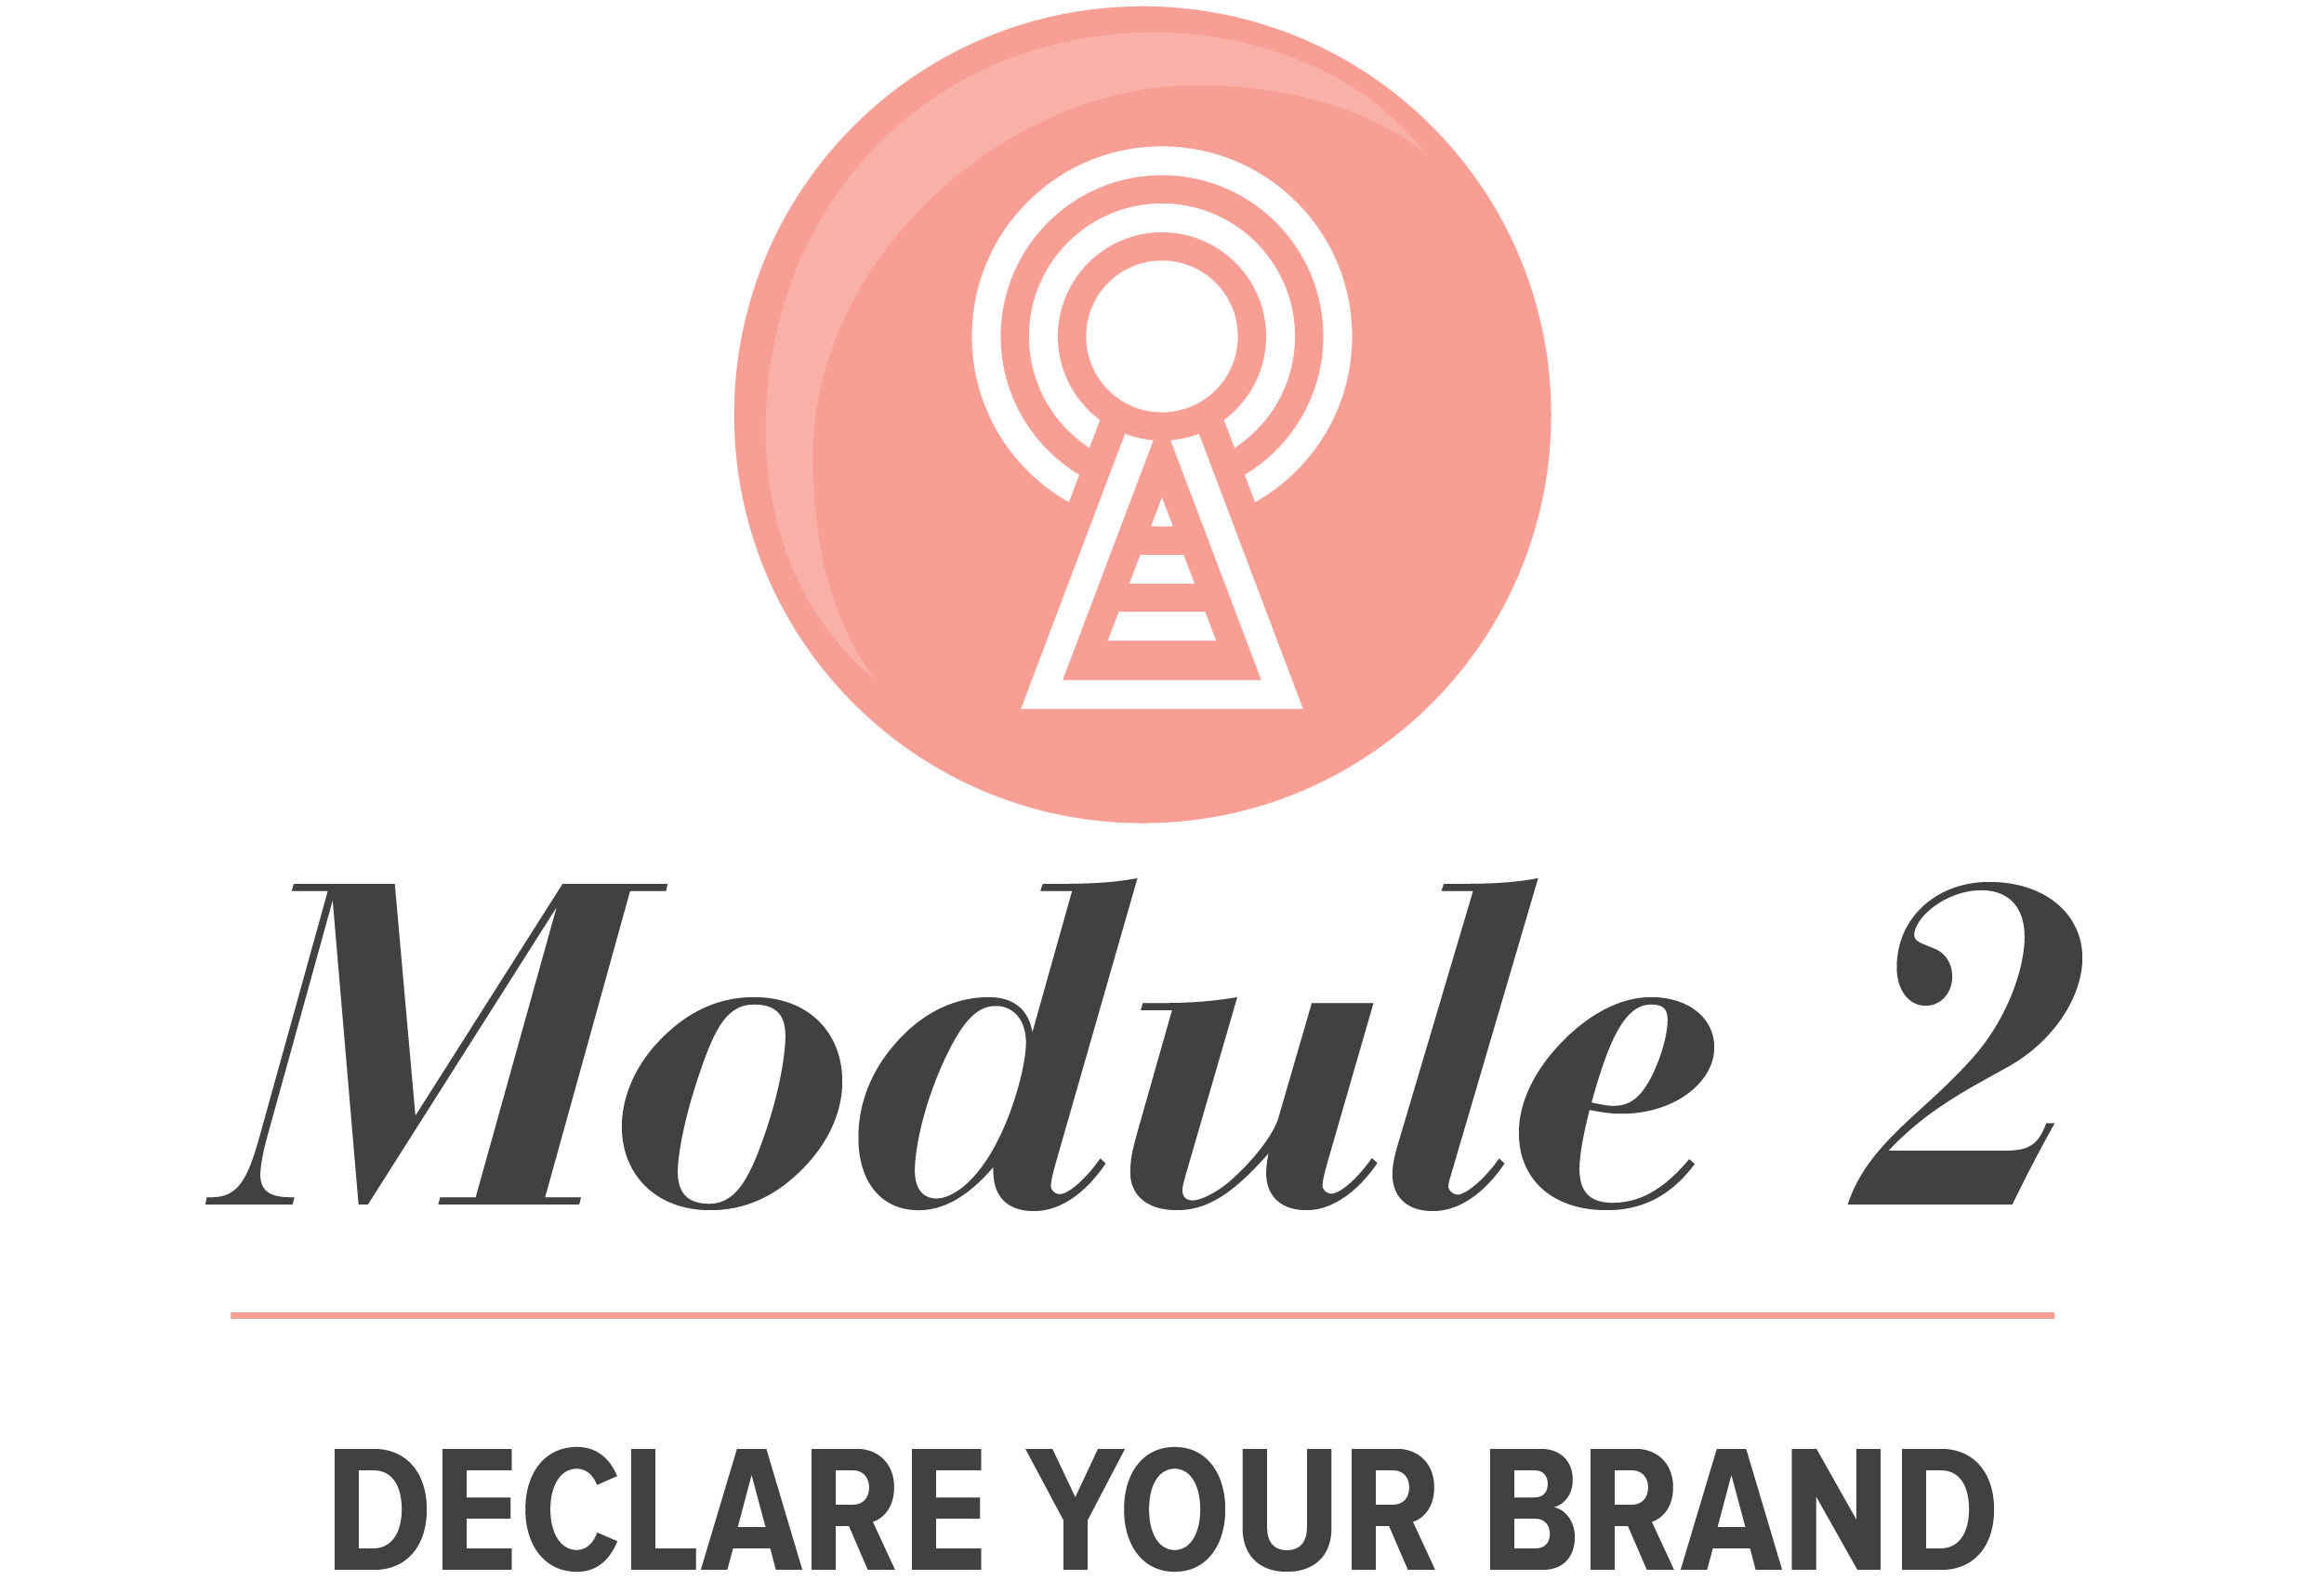 Module 2 of Pursuit with Passion Program for Entrepreneurs needing branding tips and a website.